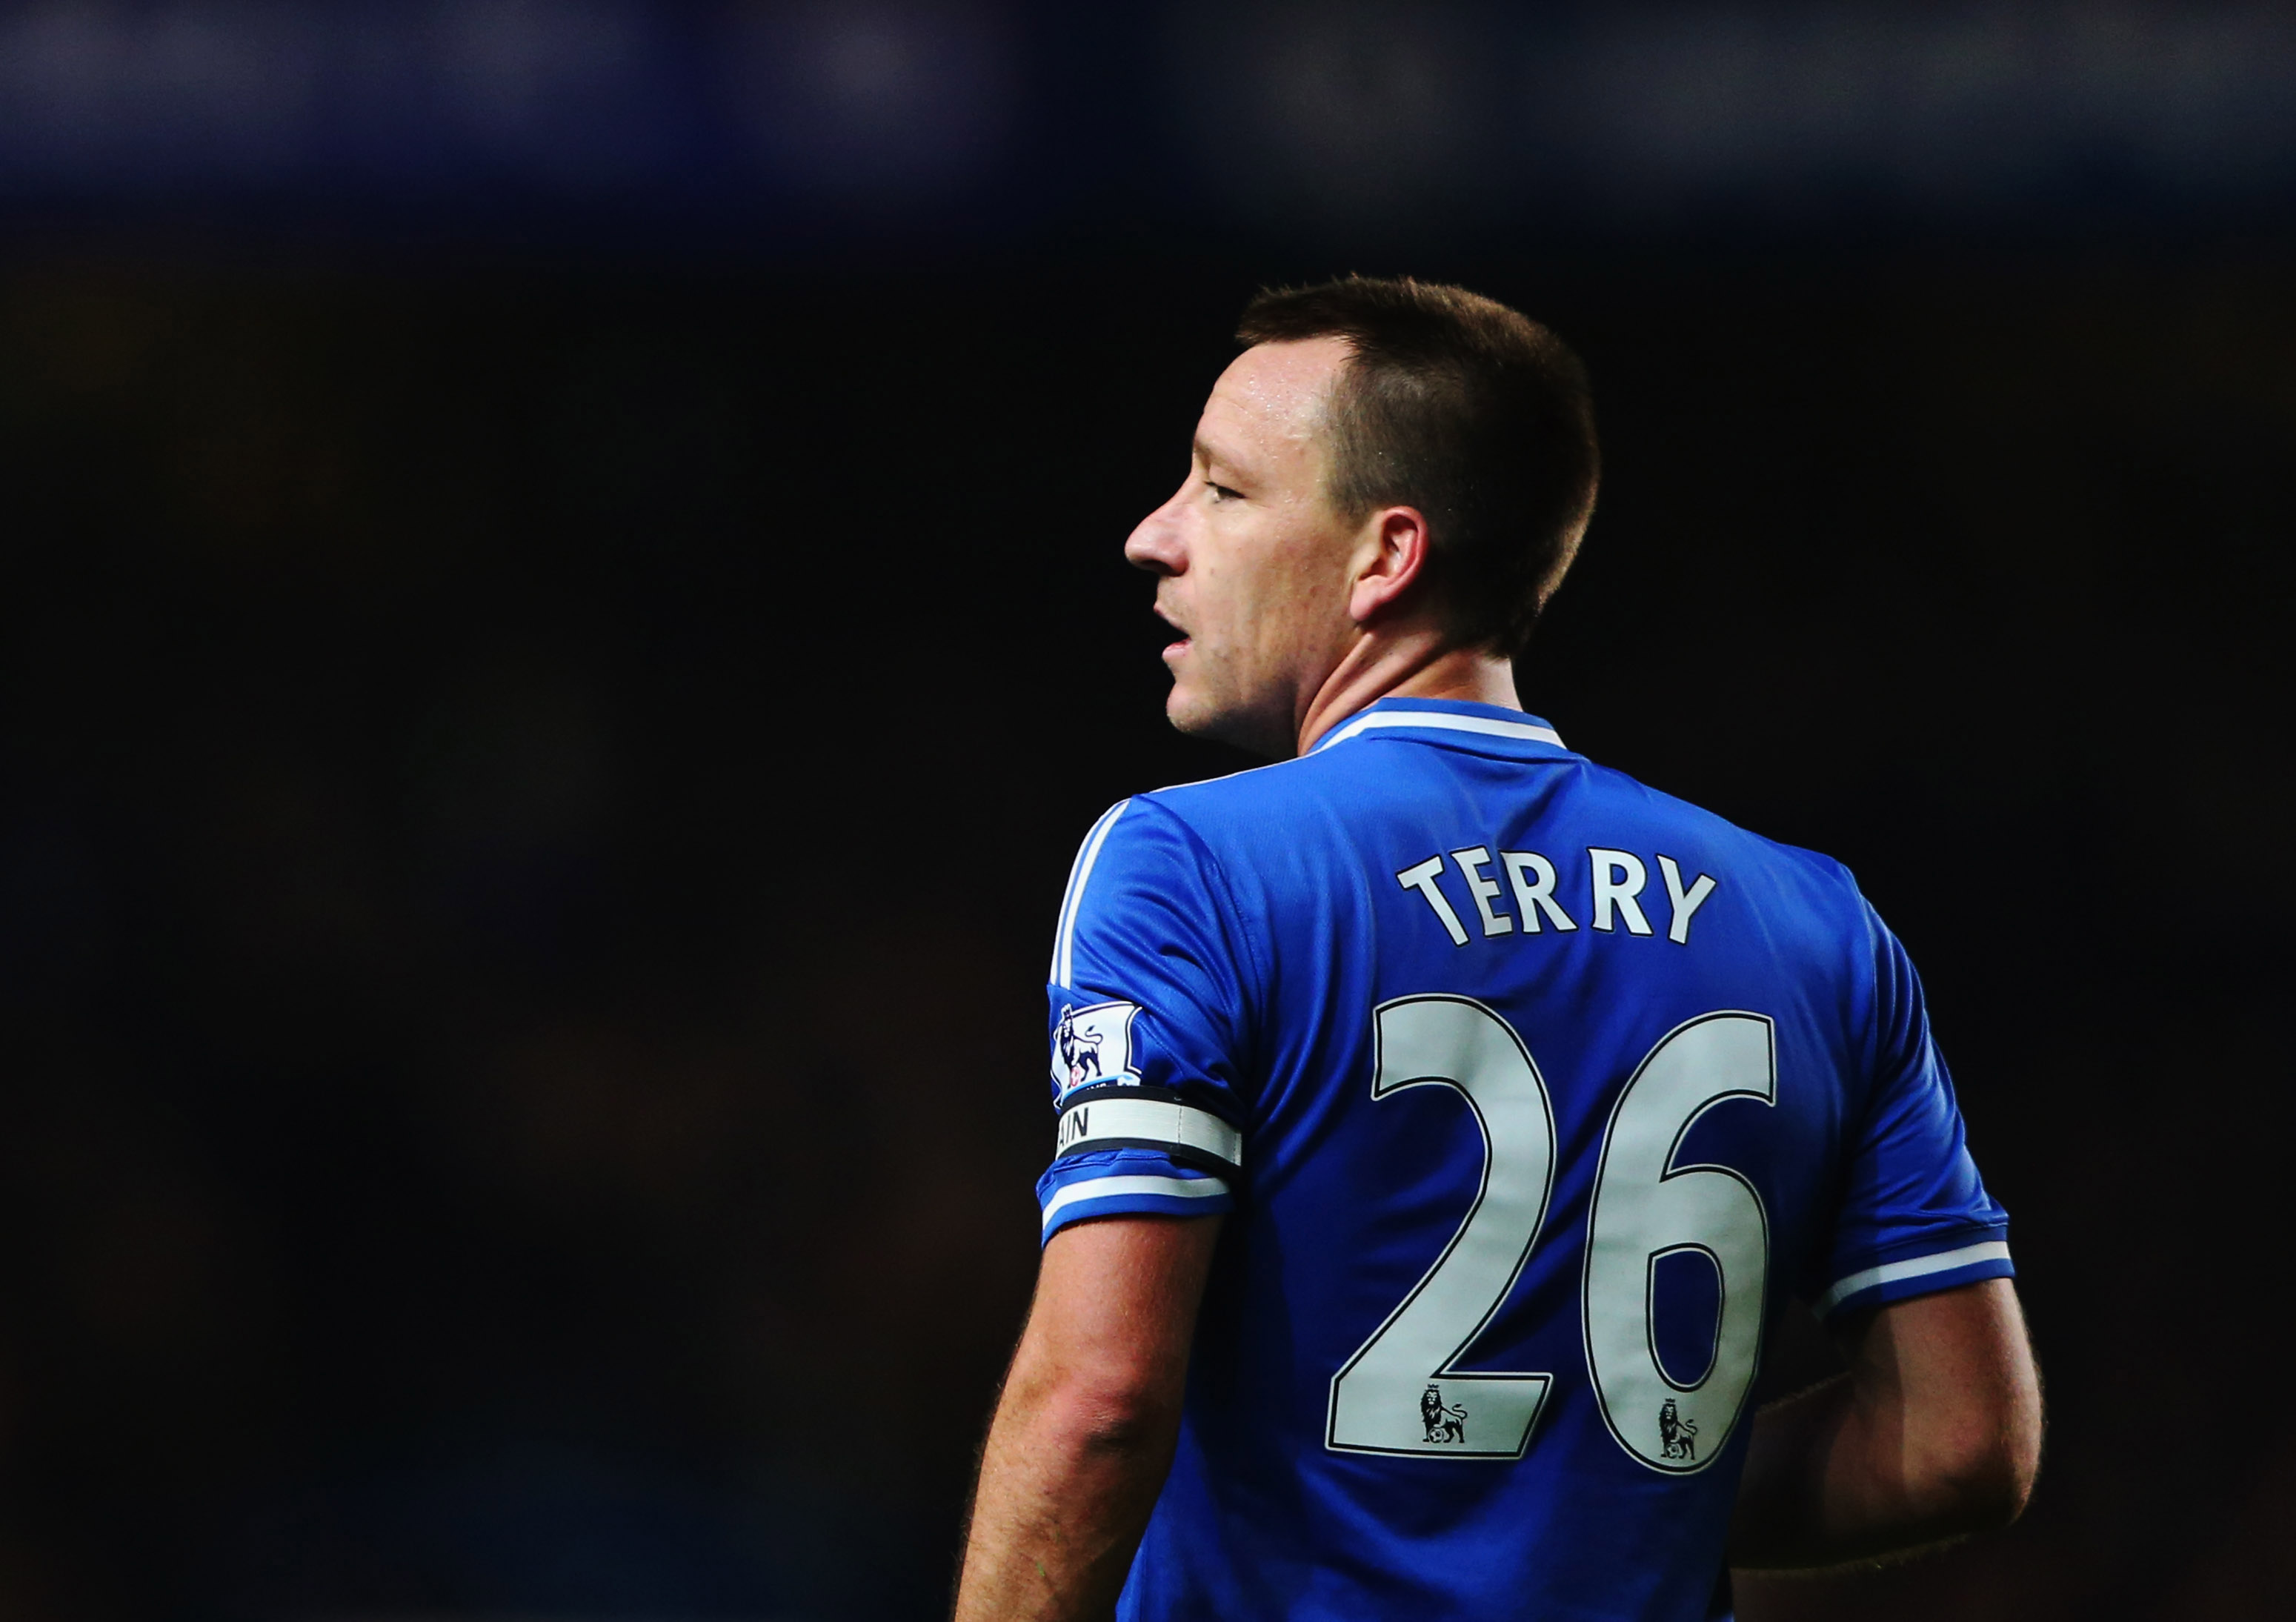 LONDON, ENGLAND - DECEMBER 01:  John Terry of Chelsea look on during the Barclays Premier League match between Chelsea and Southampton at Stamford Bridge on December 1, 2013 in London, England.  (Photo by Ian Walton/Getty Images)